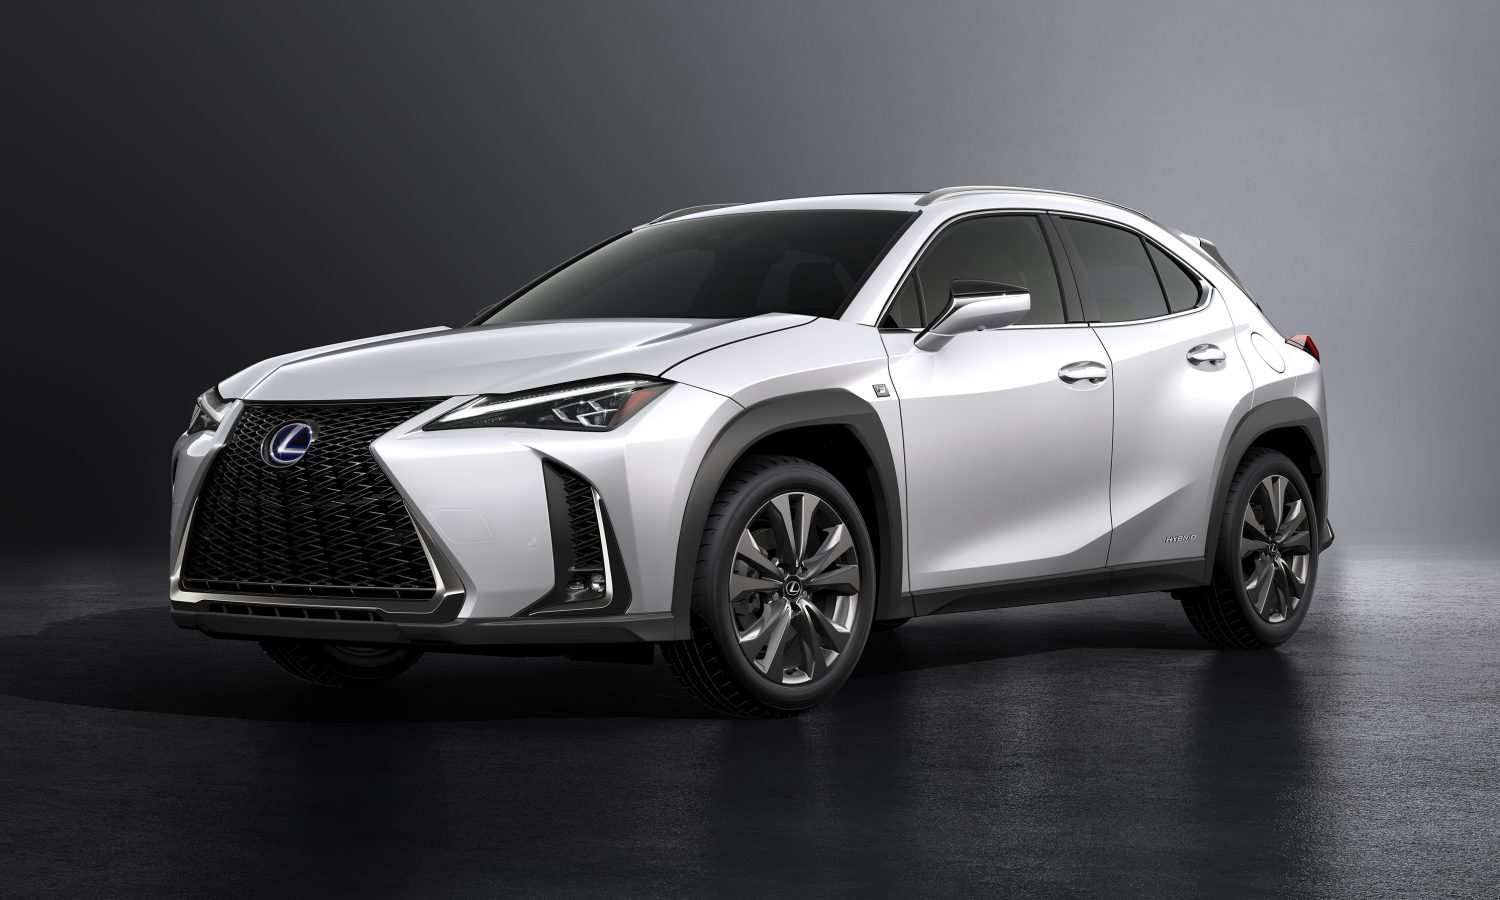 44 The Best Lexus Ux 2020 Release Date Review And Release Date